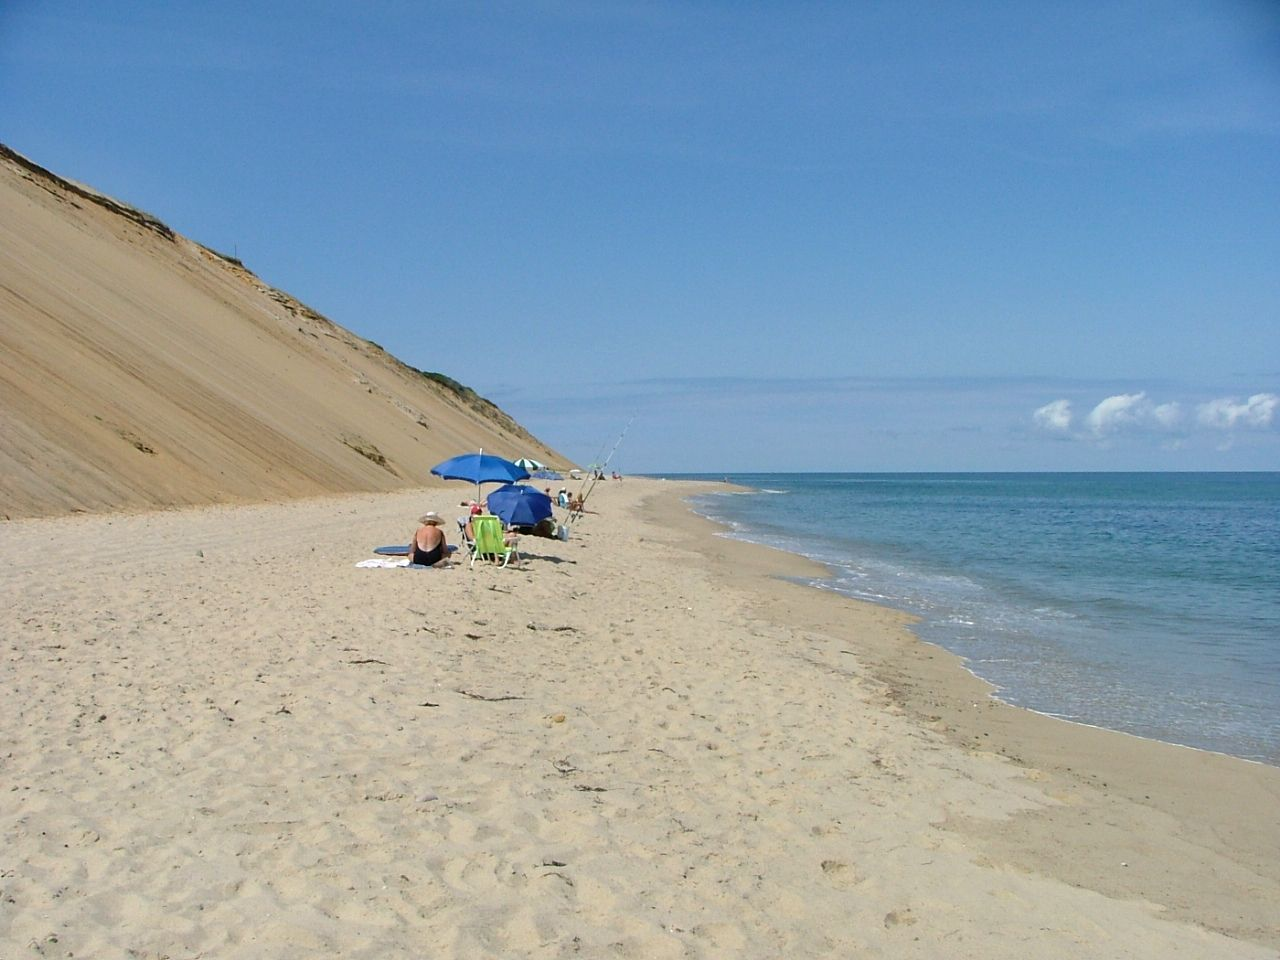 CAPE COD DUNES and beach